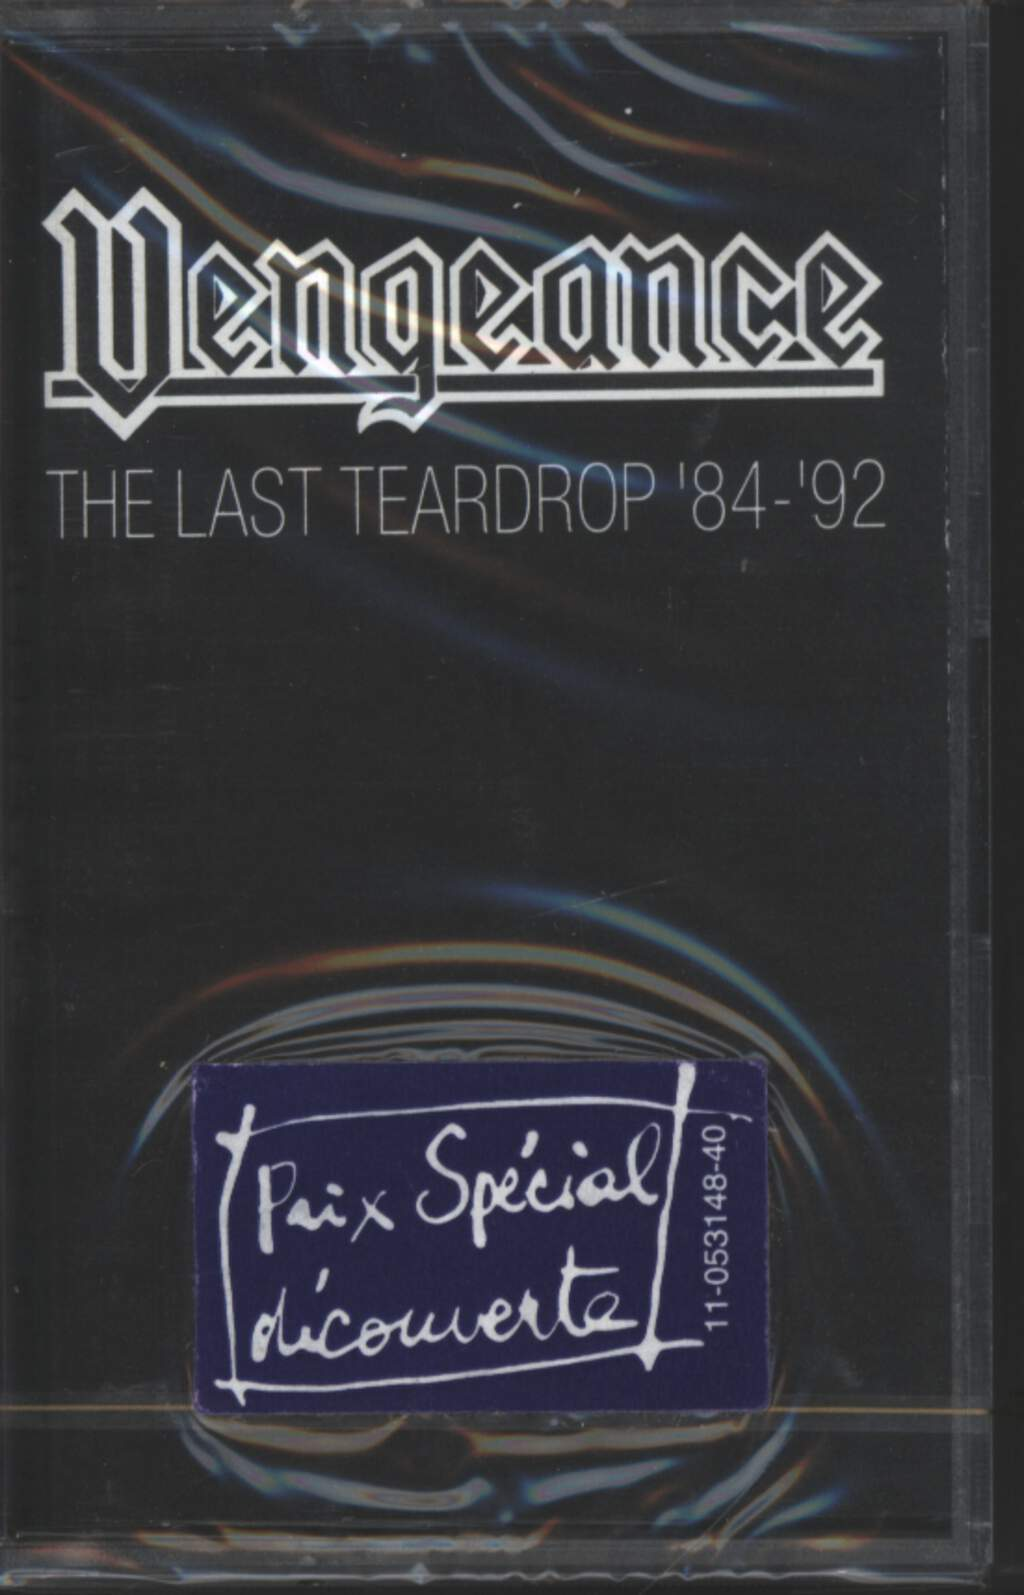 Vengeance: The Last Teardrop '84 - '92, Tape